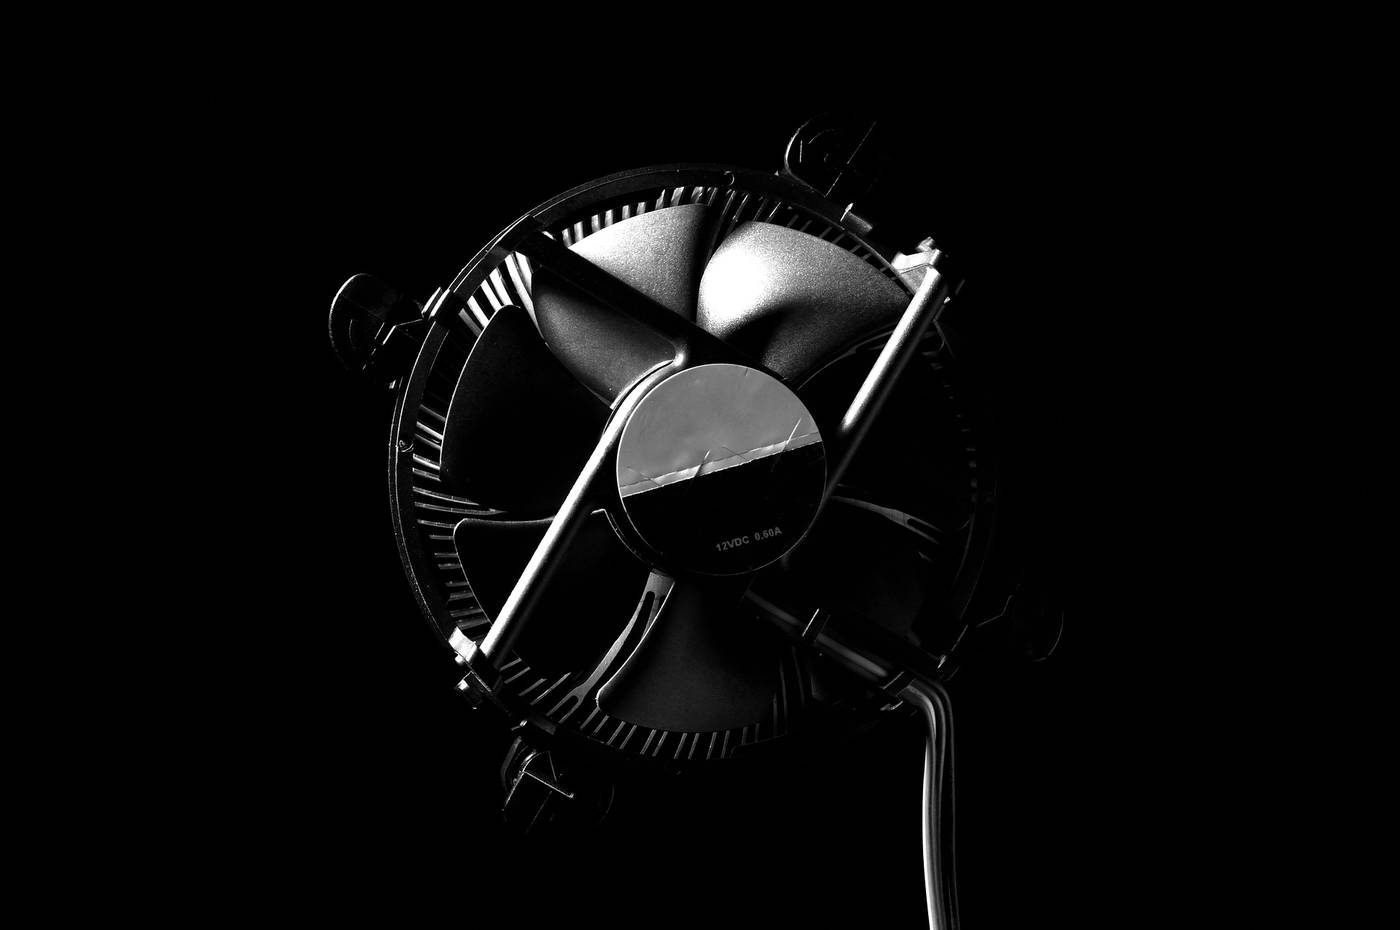 How To Make A Room Fan Quieter Do It